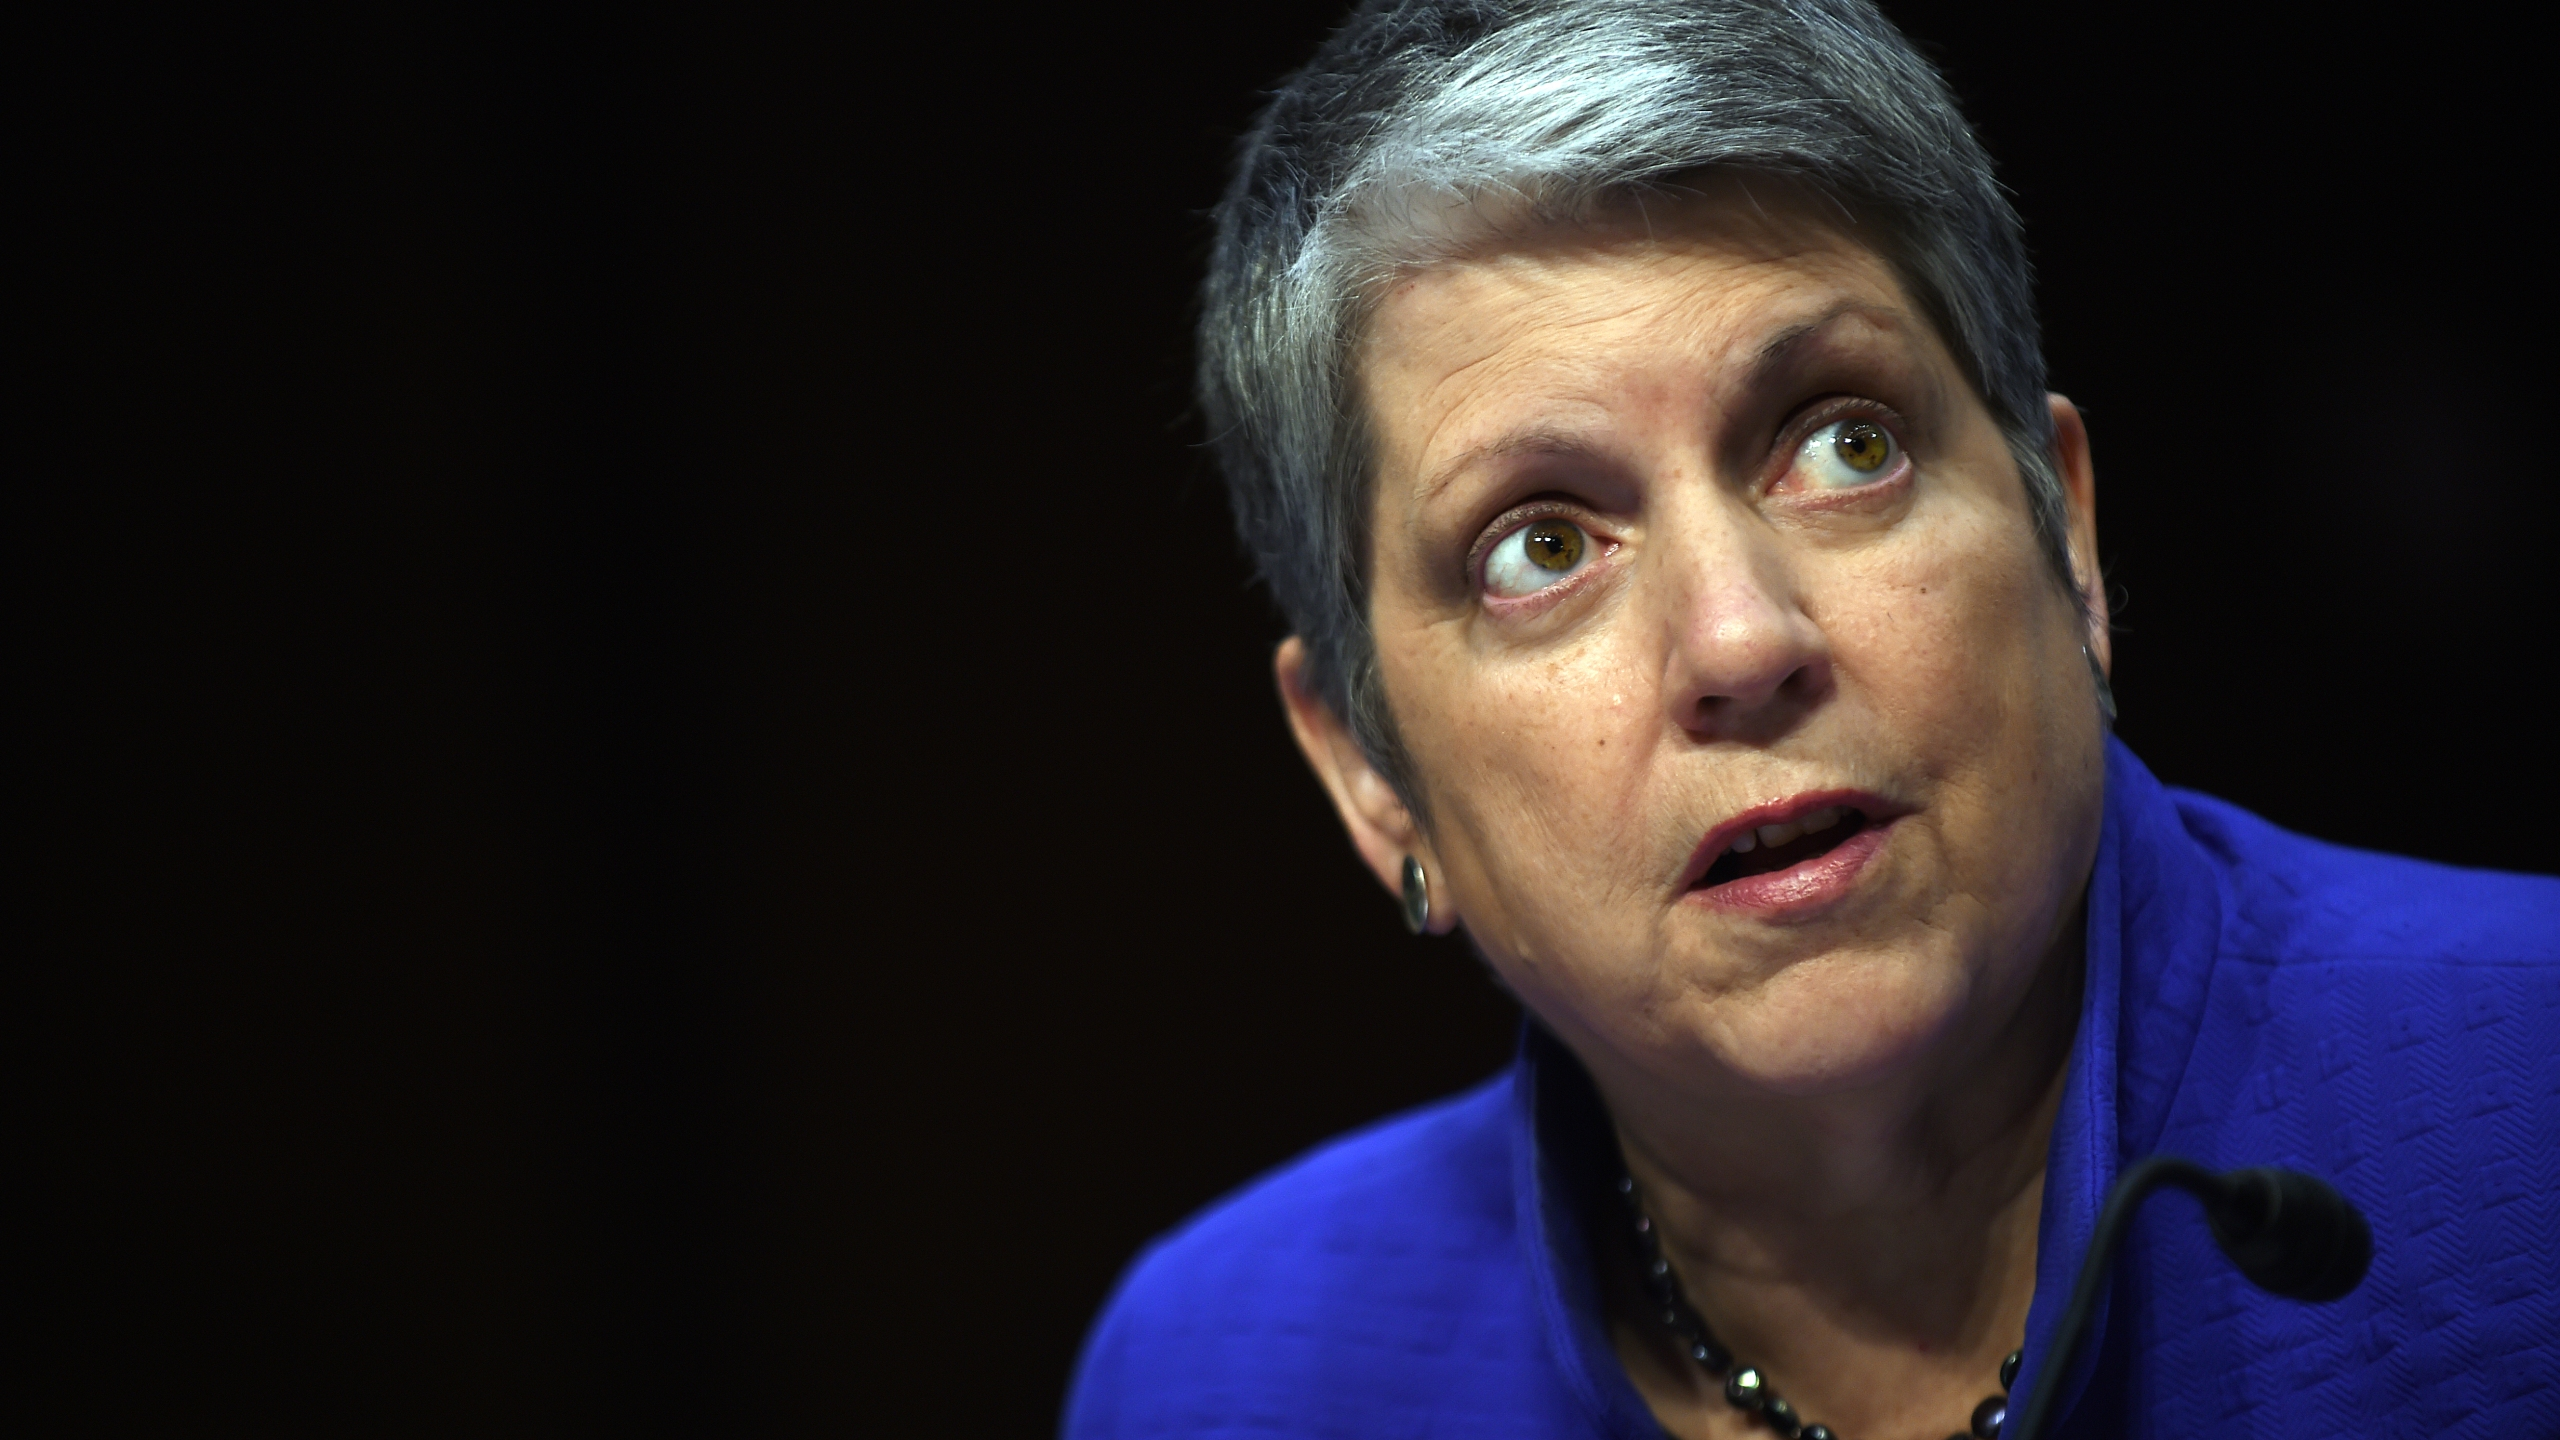 Janet Napolitano, president of the University of California, speaks during a hearing on July 29, 2015, in Washington, DC. (Astrid Riecken/Getty Images)